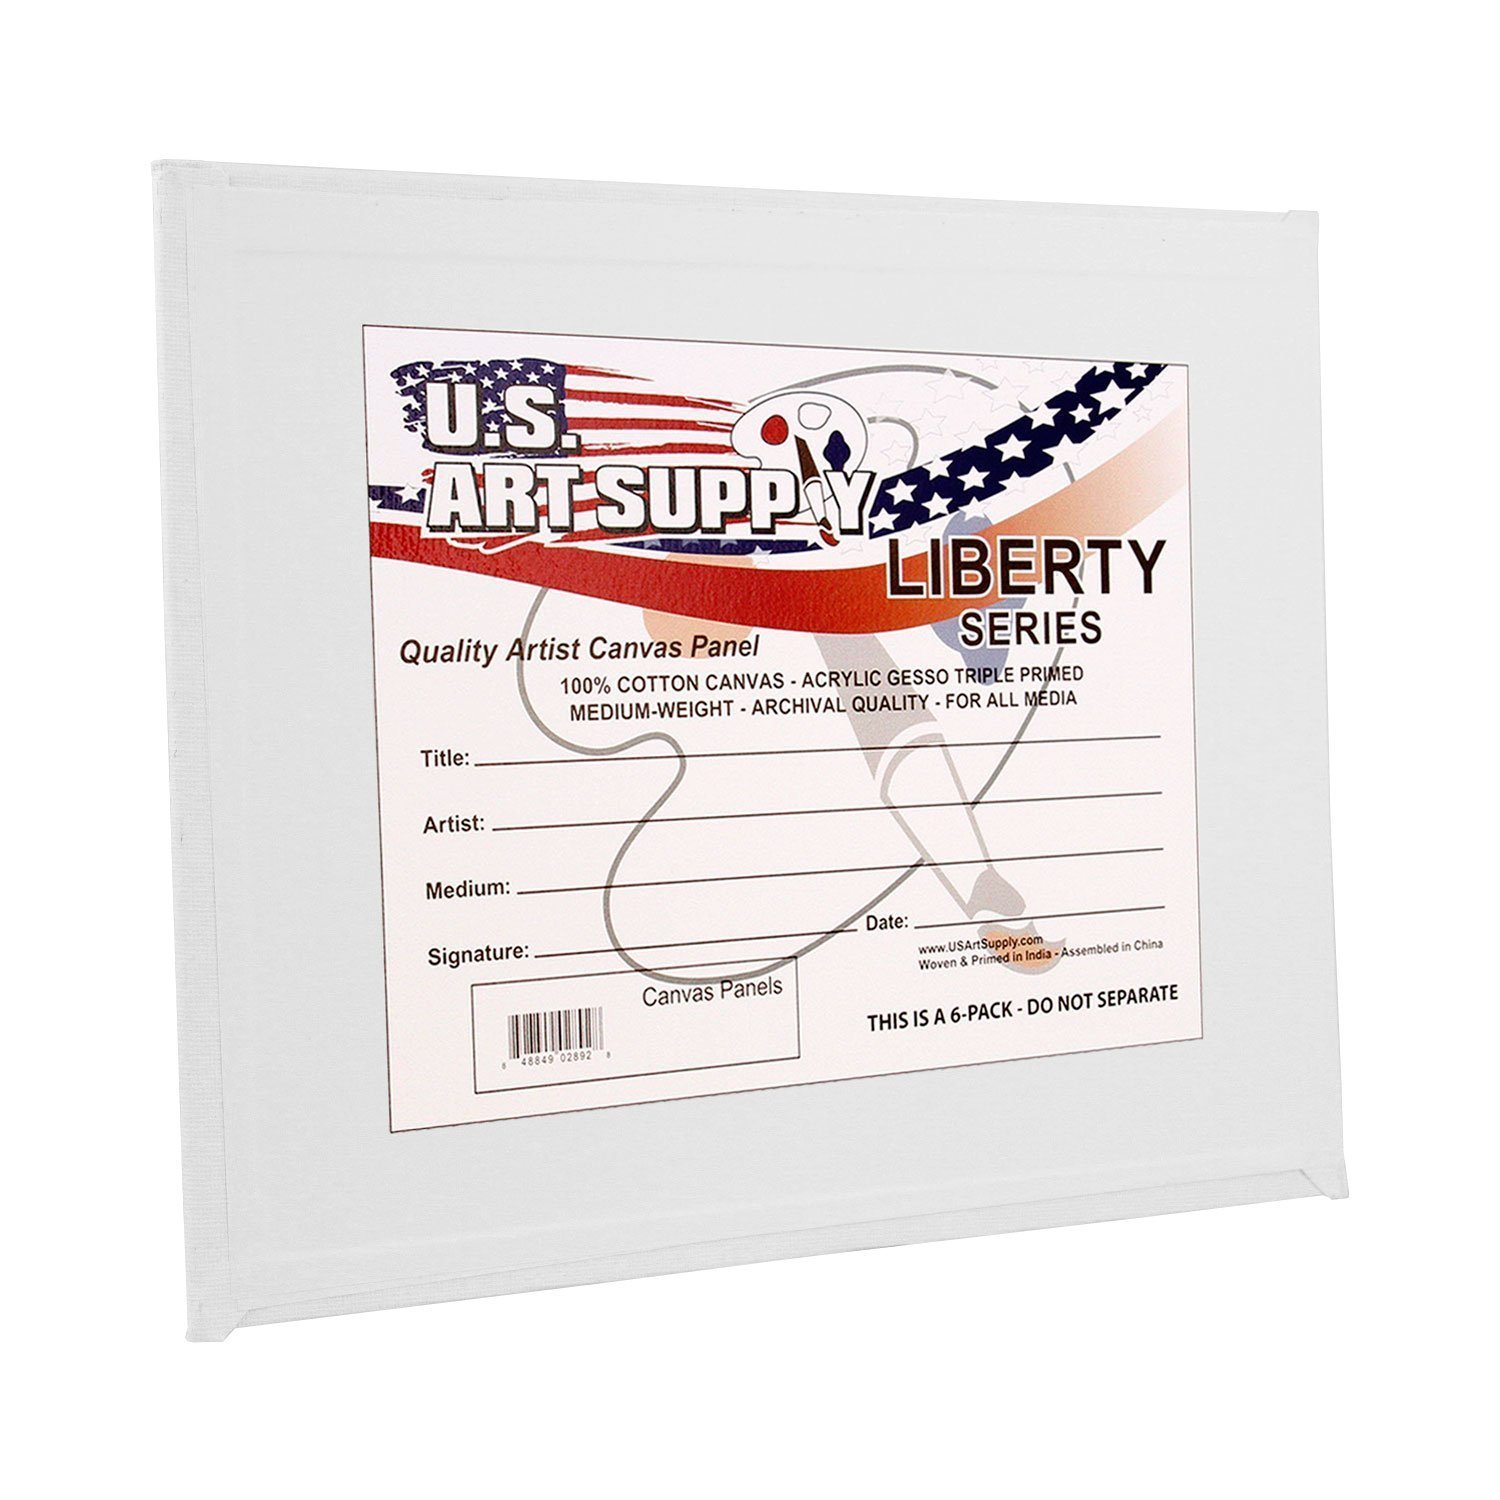 US Art Supply 5 X 7 inch Professional Artist Quality Acid Free Canvas Panels 8-12-Packs (1 Full Case of 96 Single Canvas Panels) by US Art Supply (Image #3)